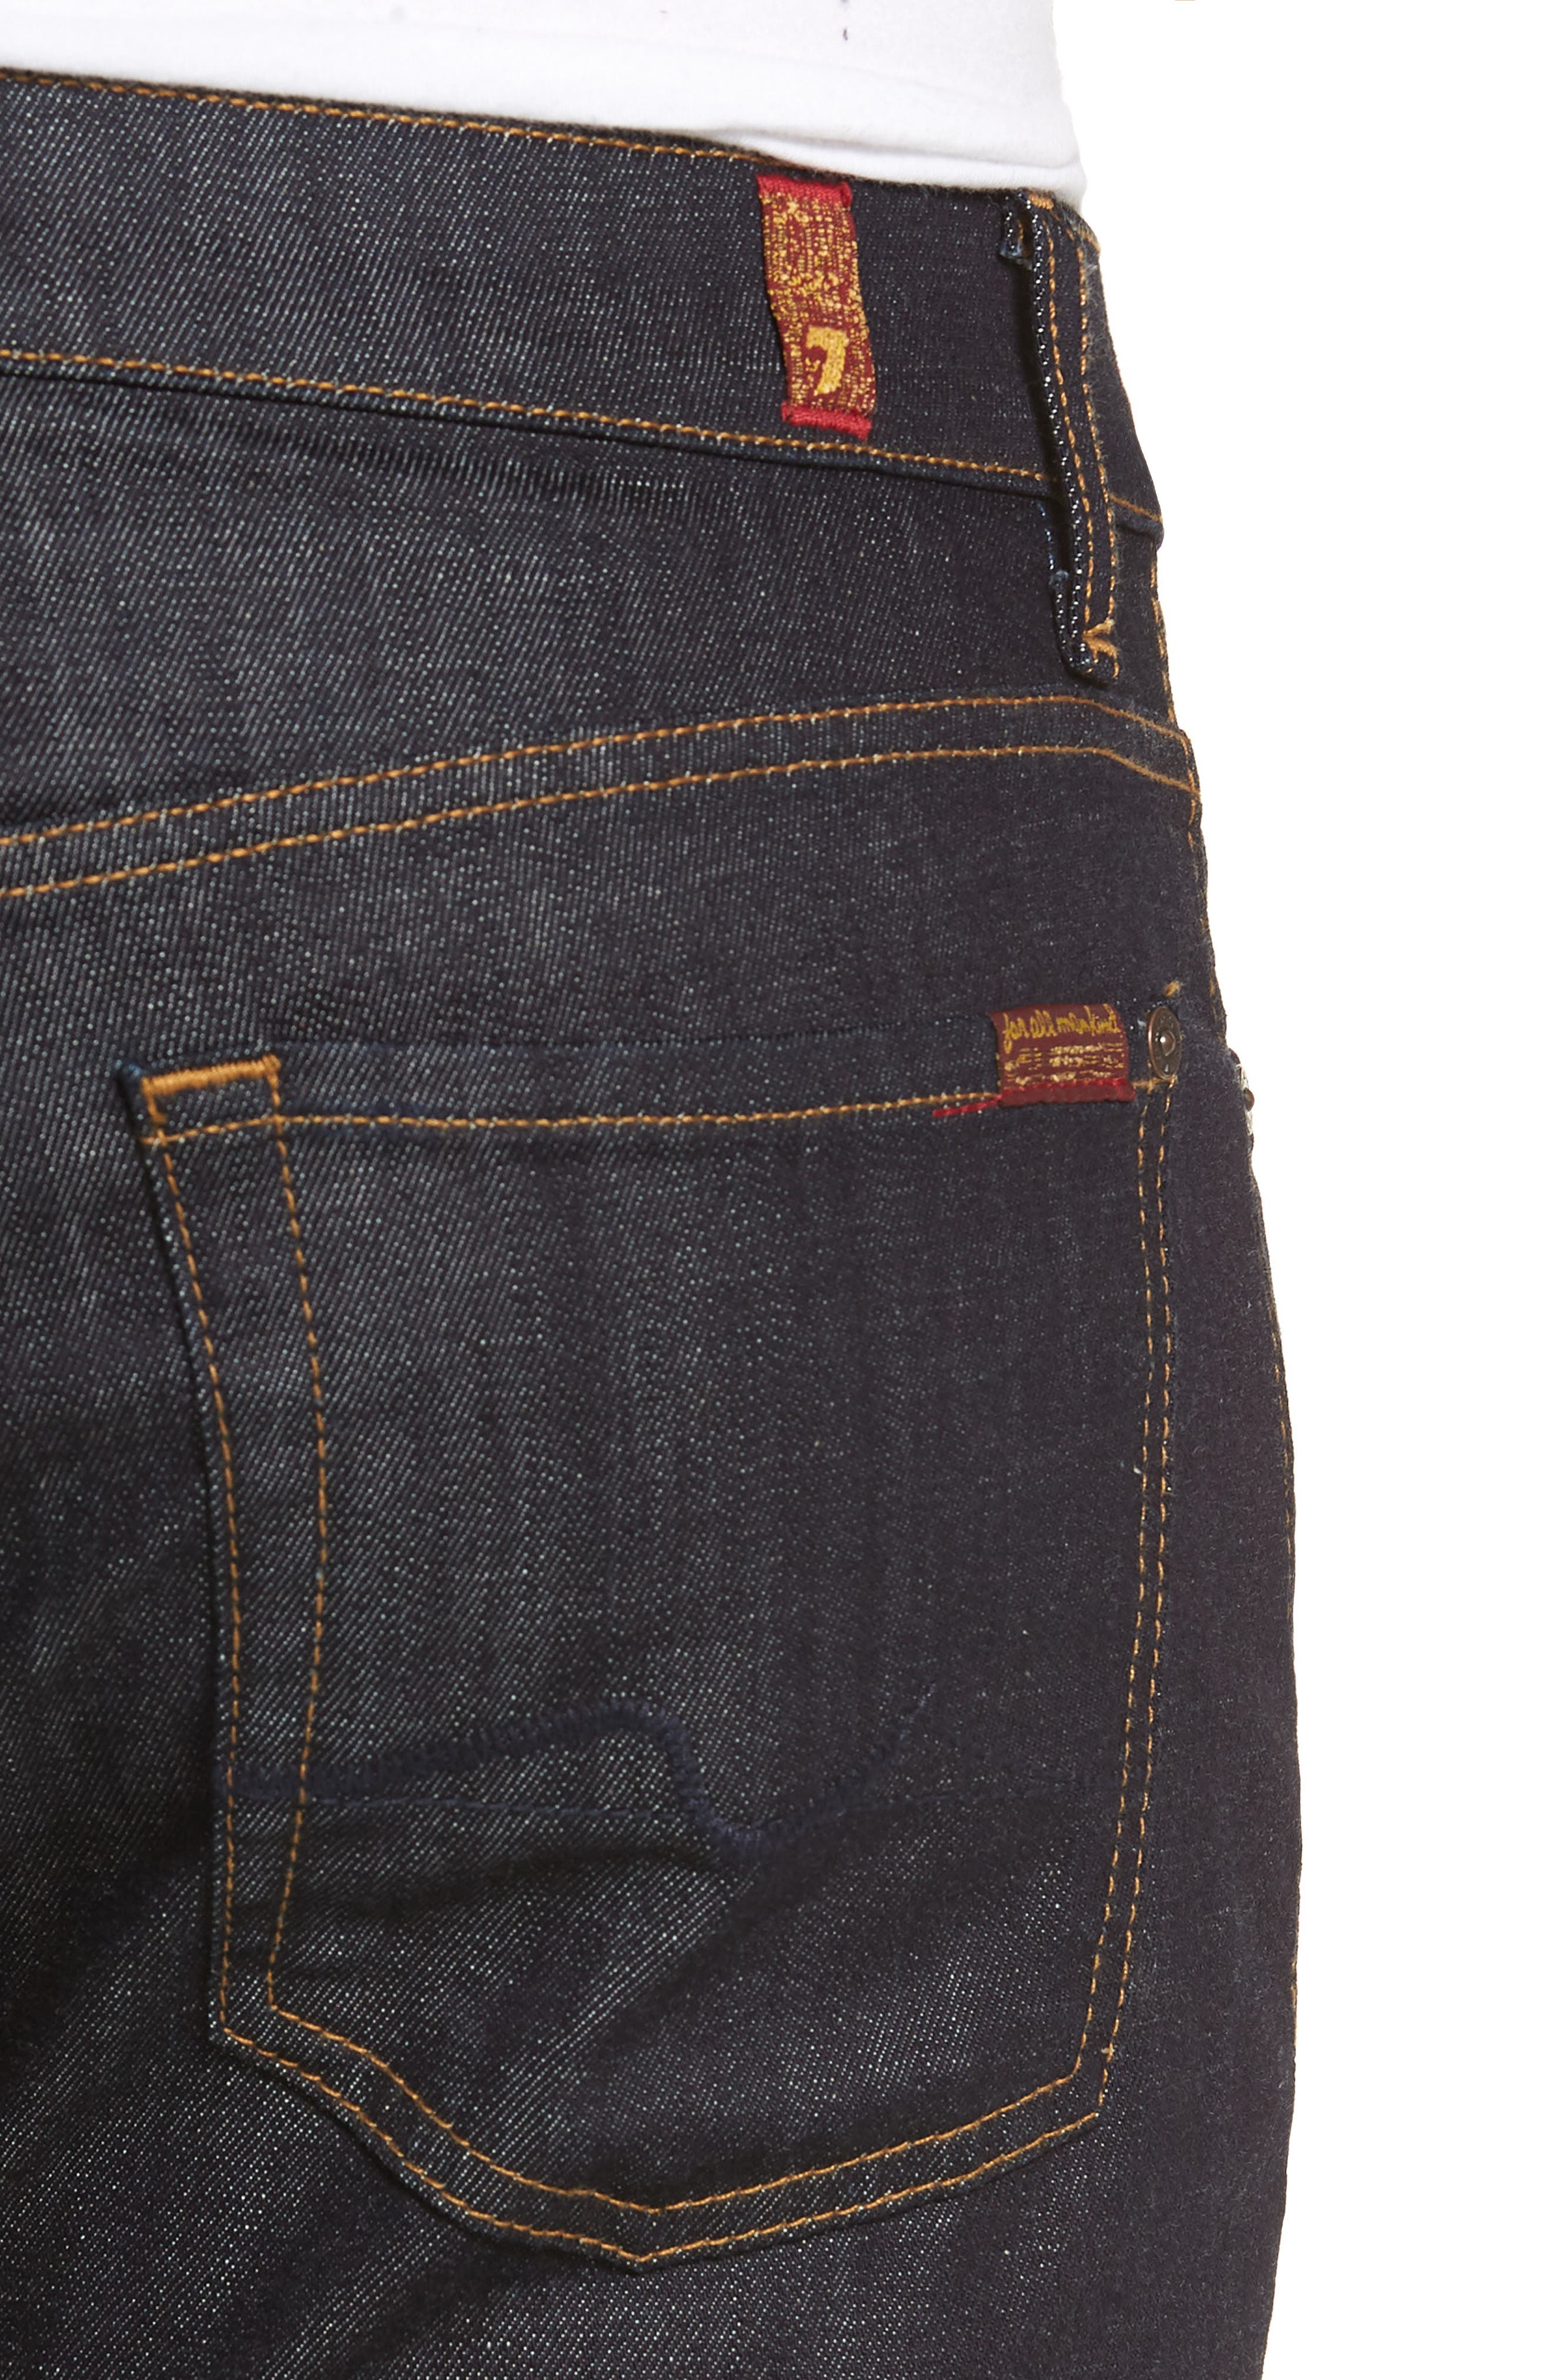 'Standard' Straight Leg Jeans,                             Alternate thumbnail 5, color,                             DARK AND CLEAN